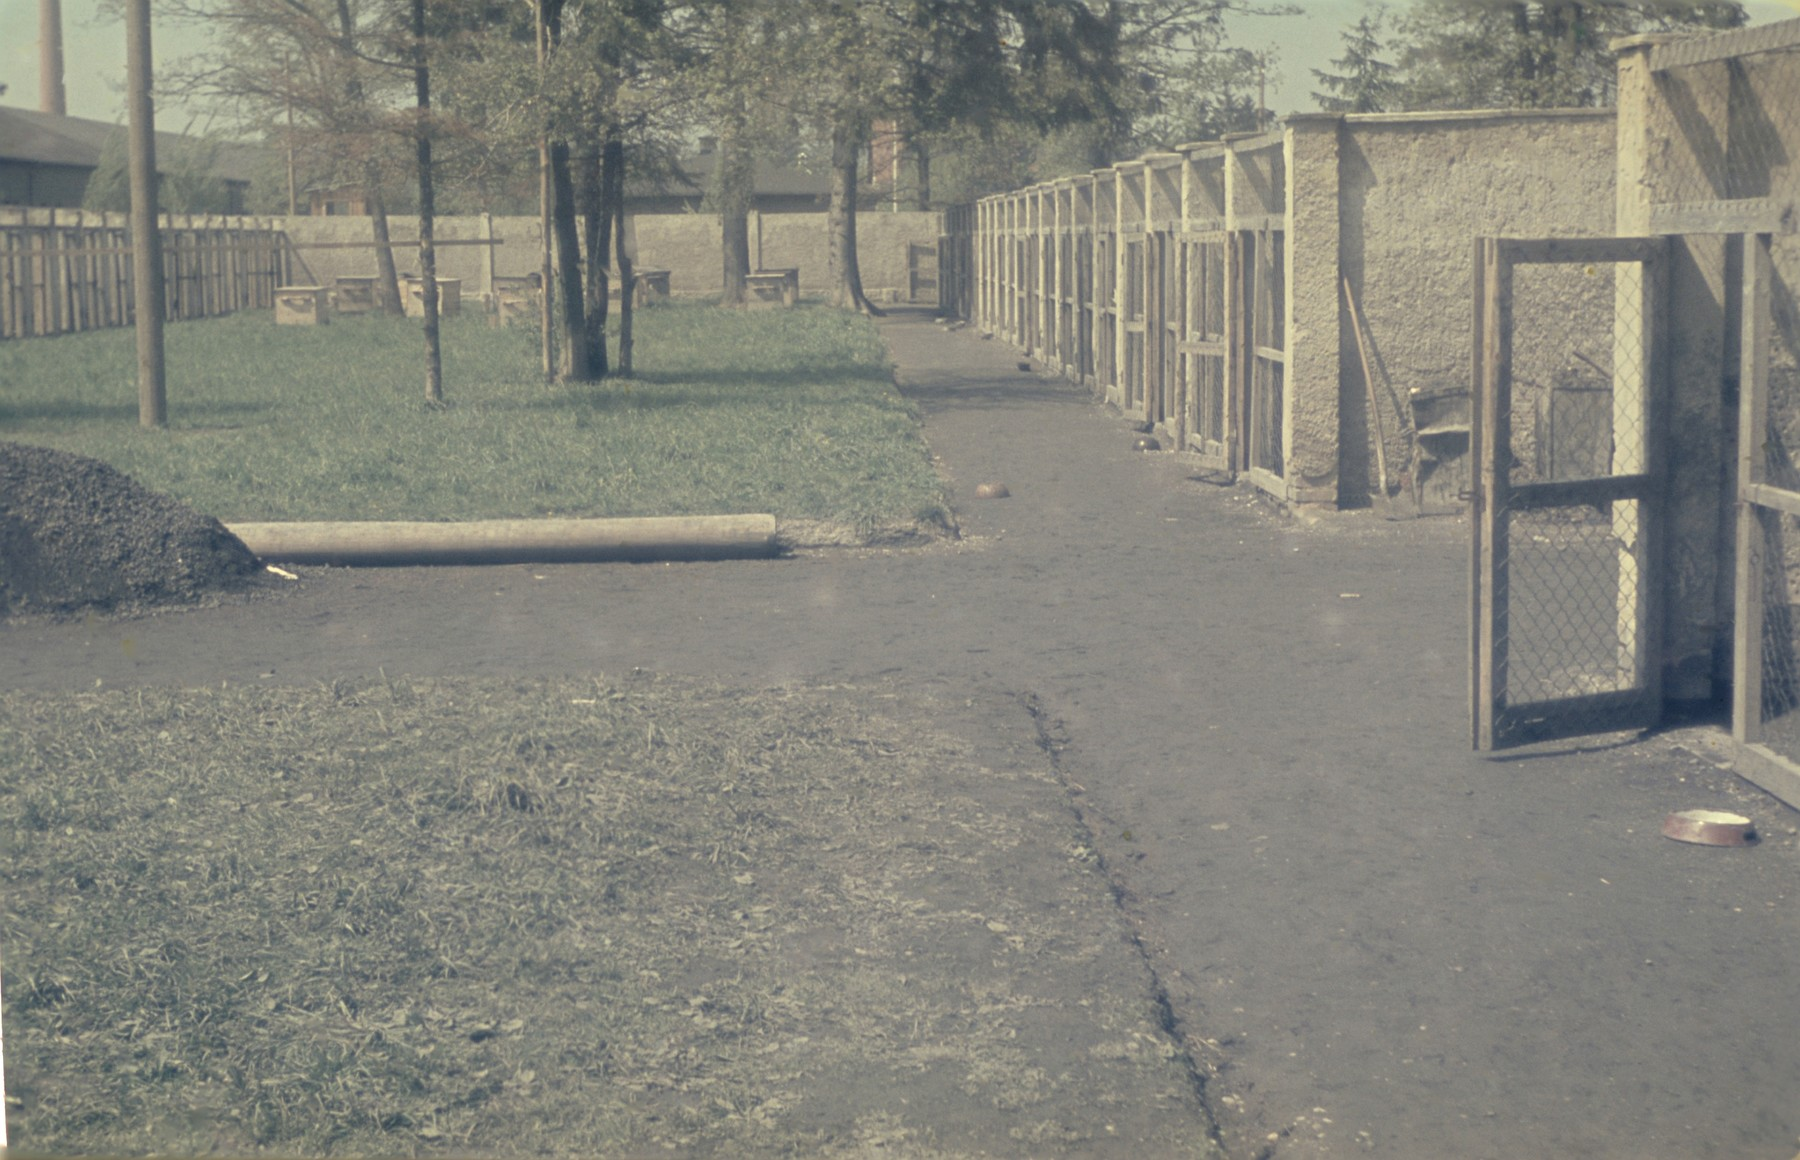 View of the dog kennels in the newly liberated Dachau concentration camp.